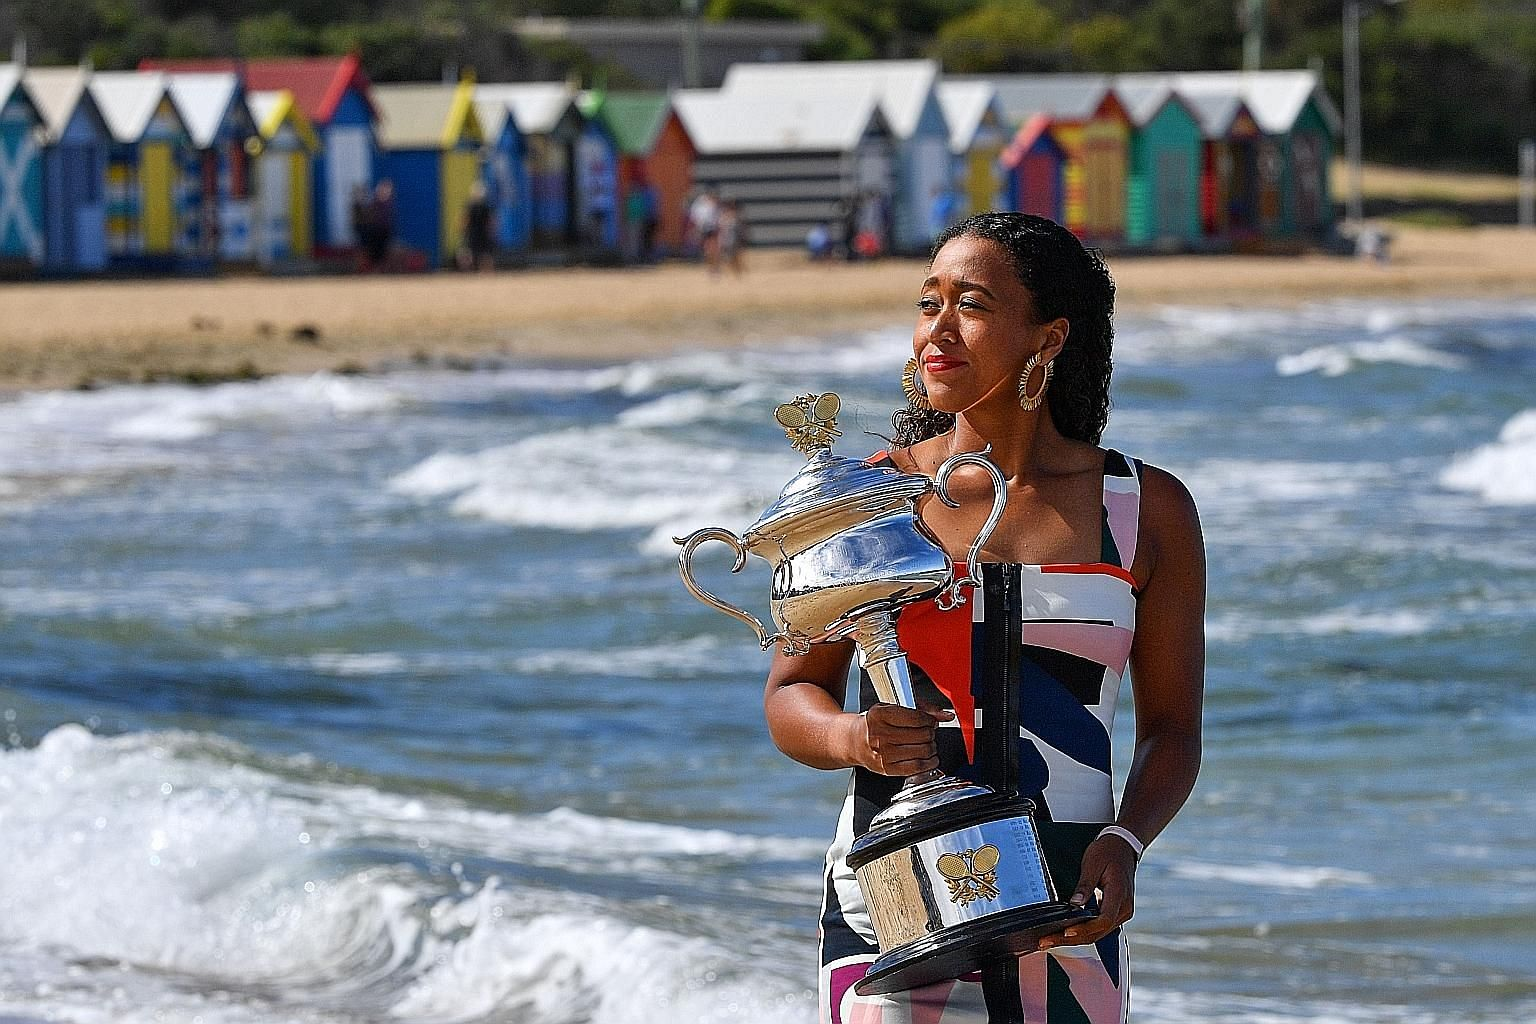 Australian Open winner Naomi Osaka holding the championship trophy at Brighton Beach in Melbourne yesterday. The 21-year-old Japanese will rise to world No. 1 today.